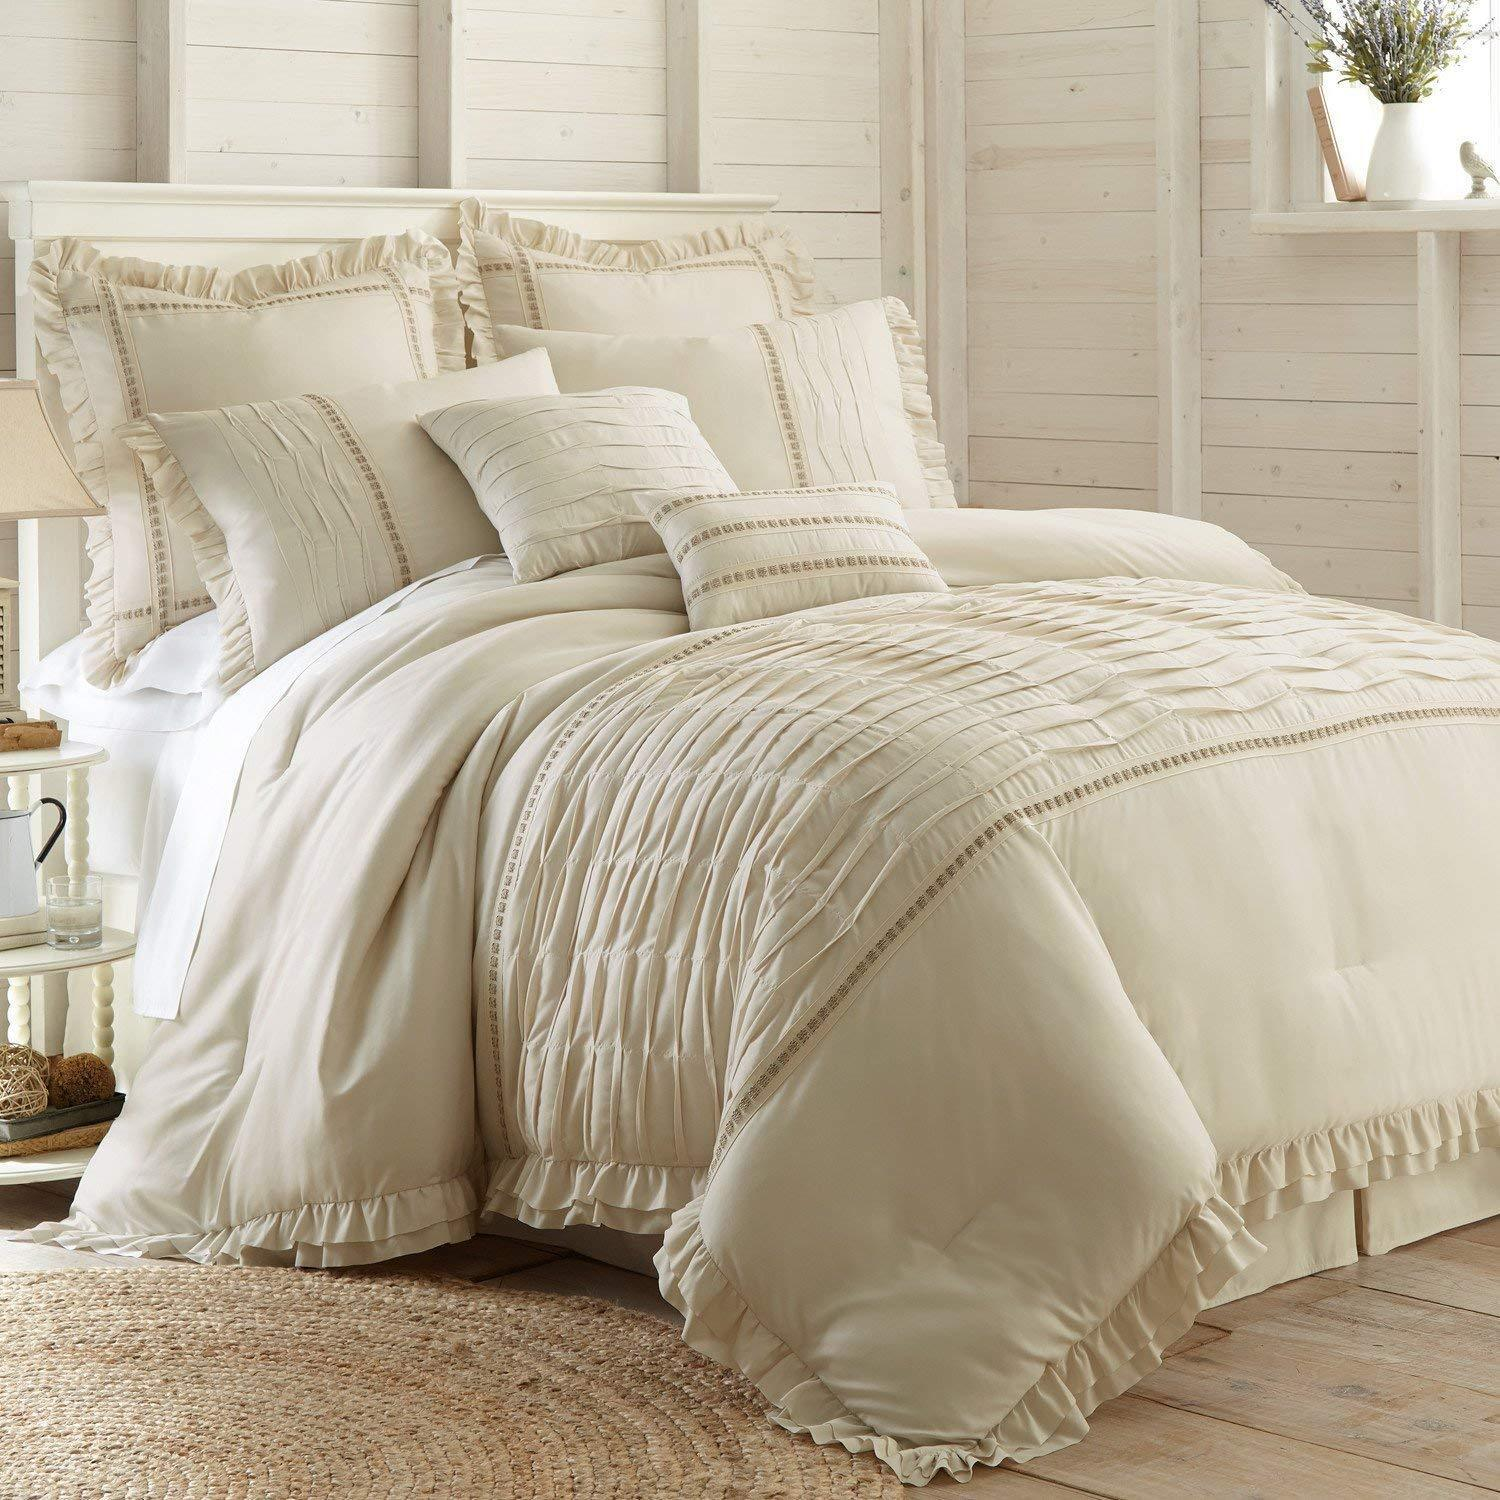 Cal King Comforter Set 8PC Country Cottage Ruffled Embroidered Beige Bedskirt